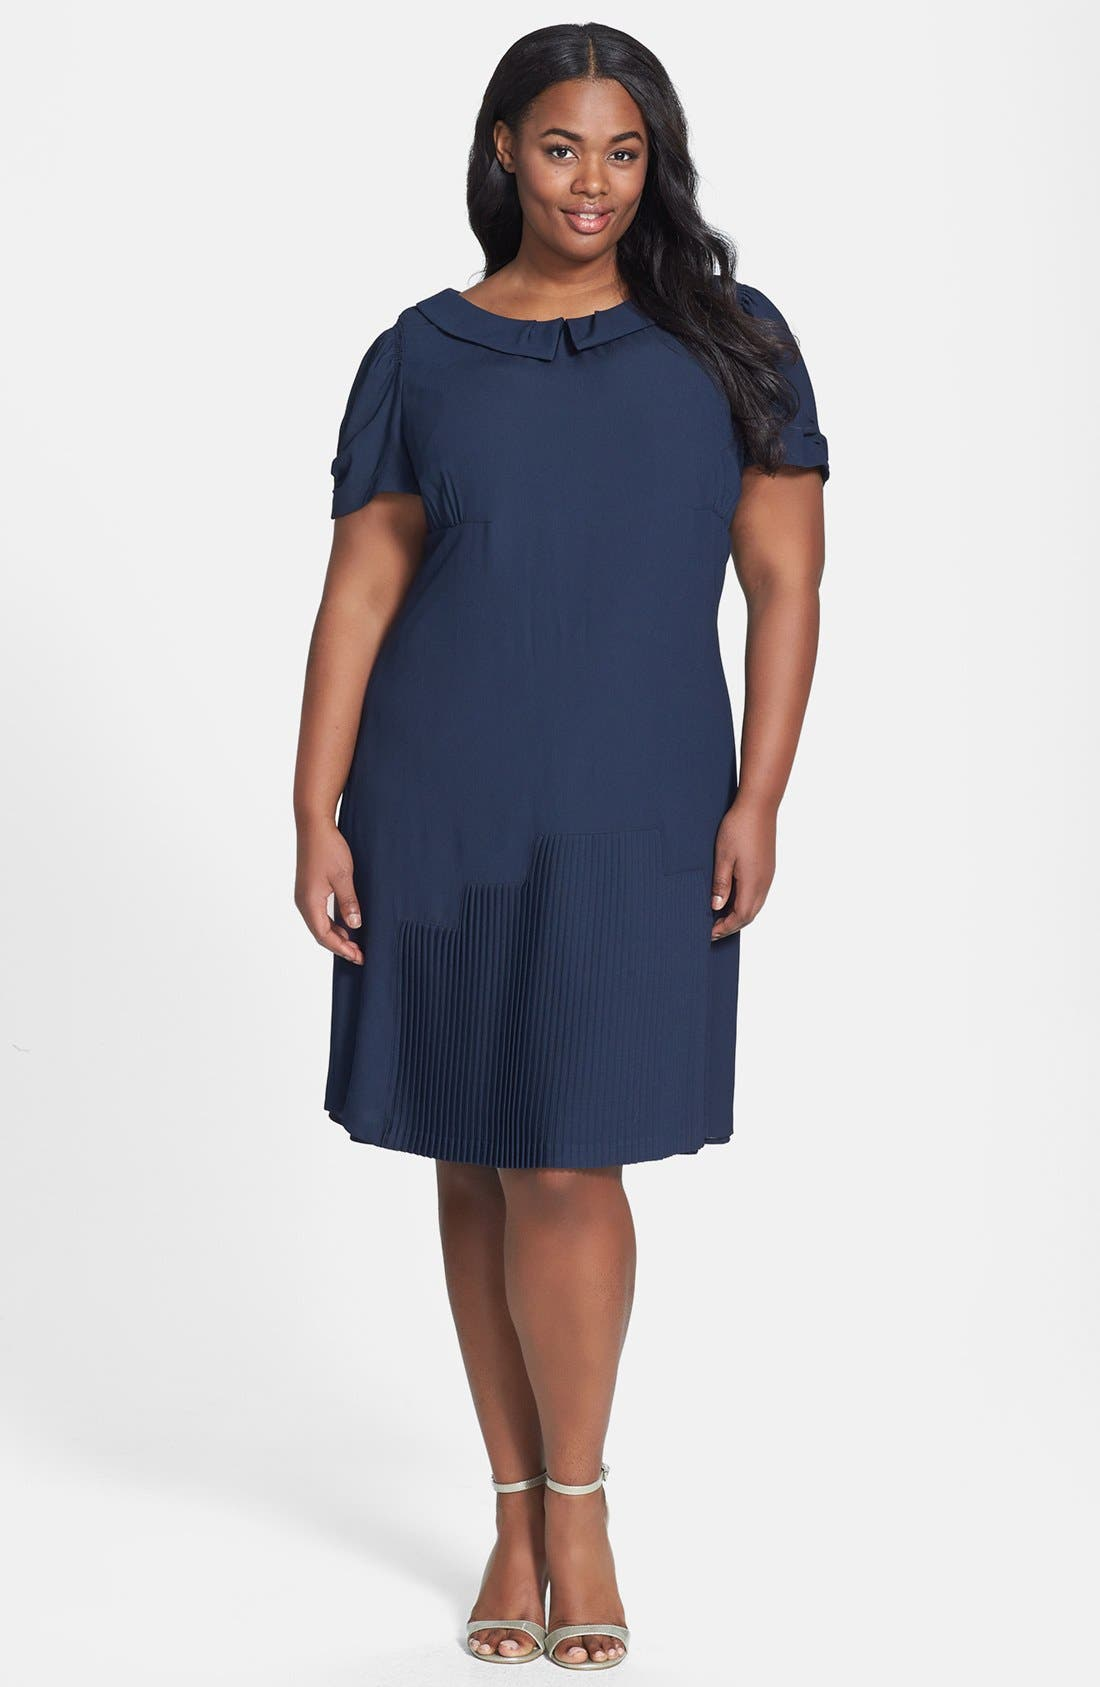 Alternate Image 1 Selected - ABS by Allen Schwartz Peter Pan Collar Dress (Plus Size)